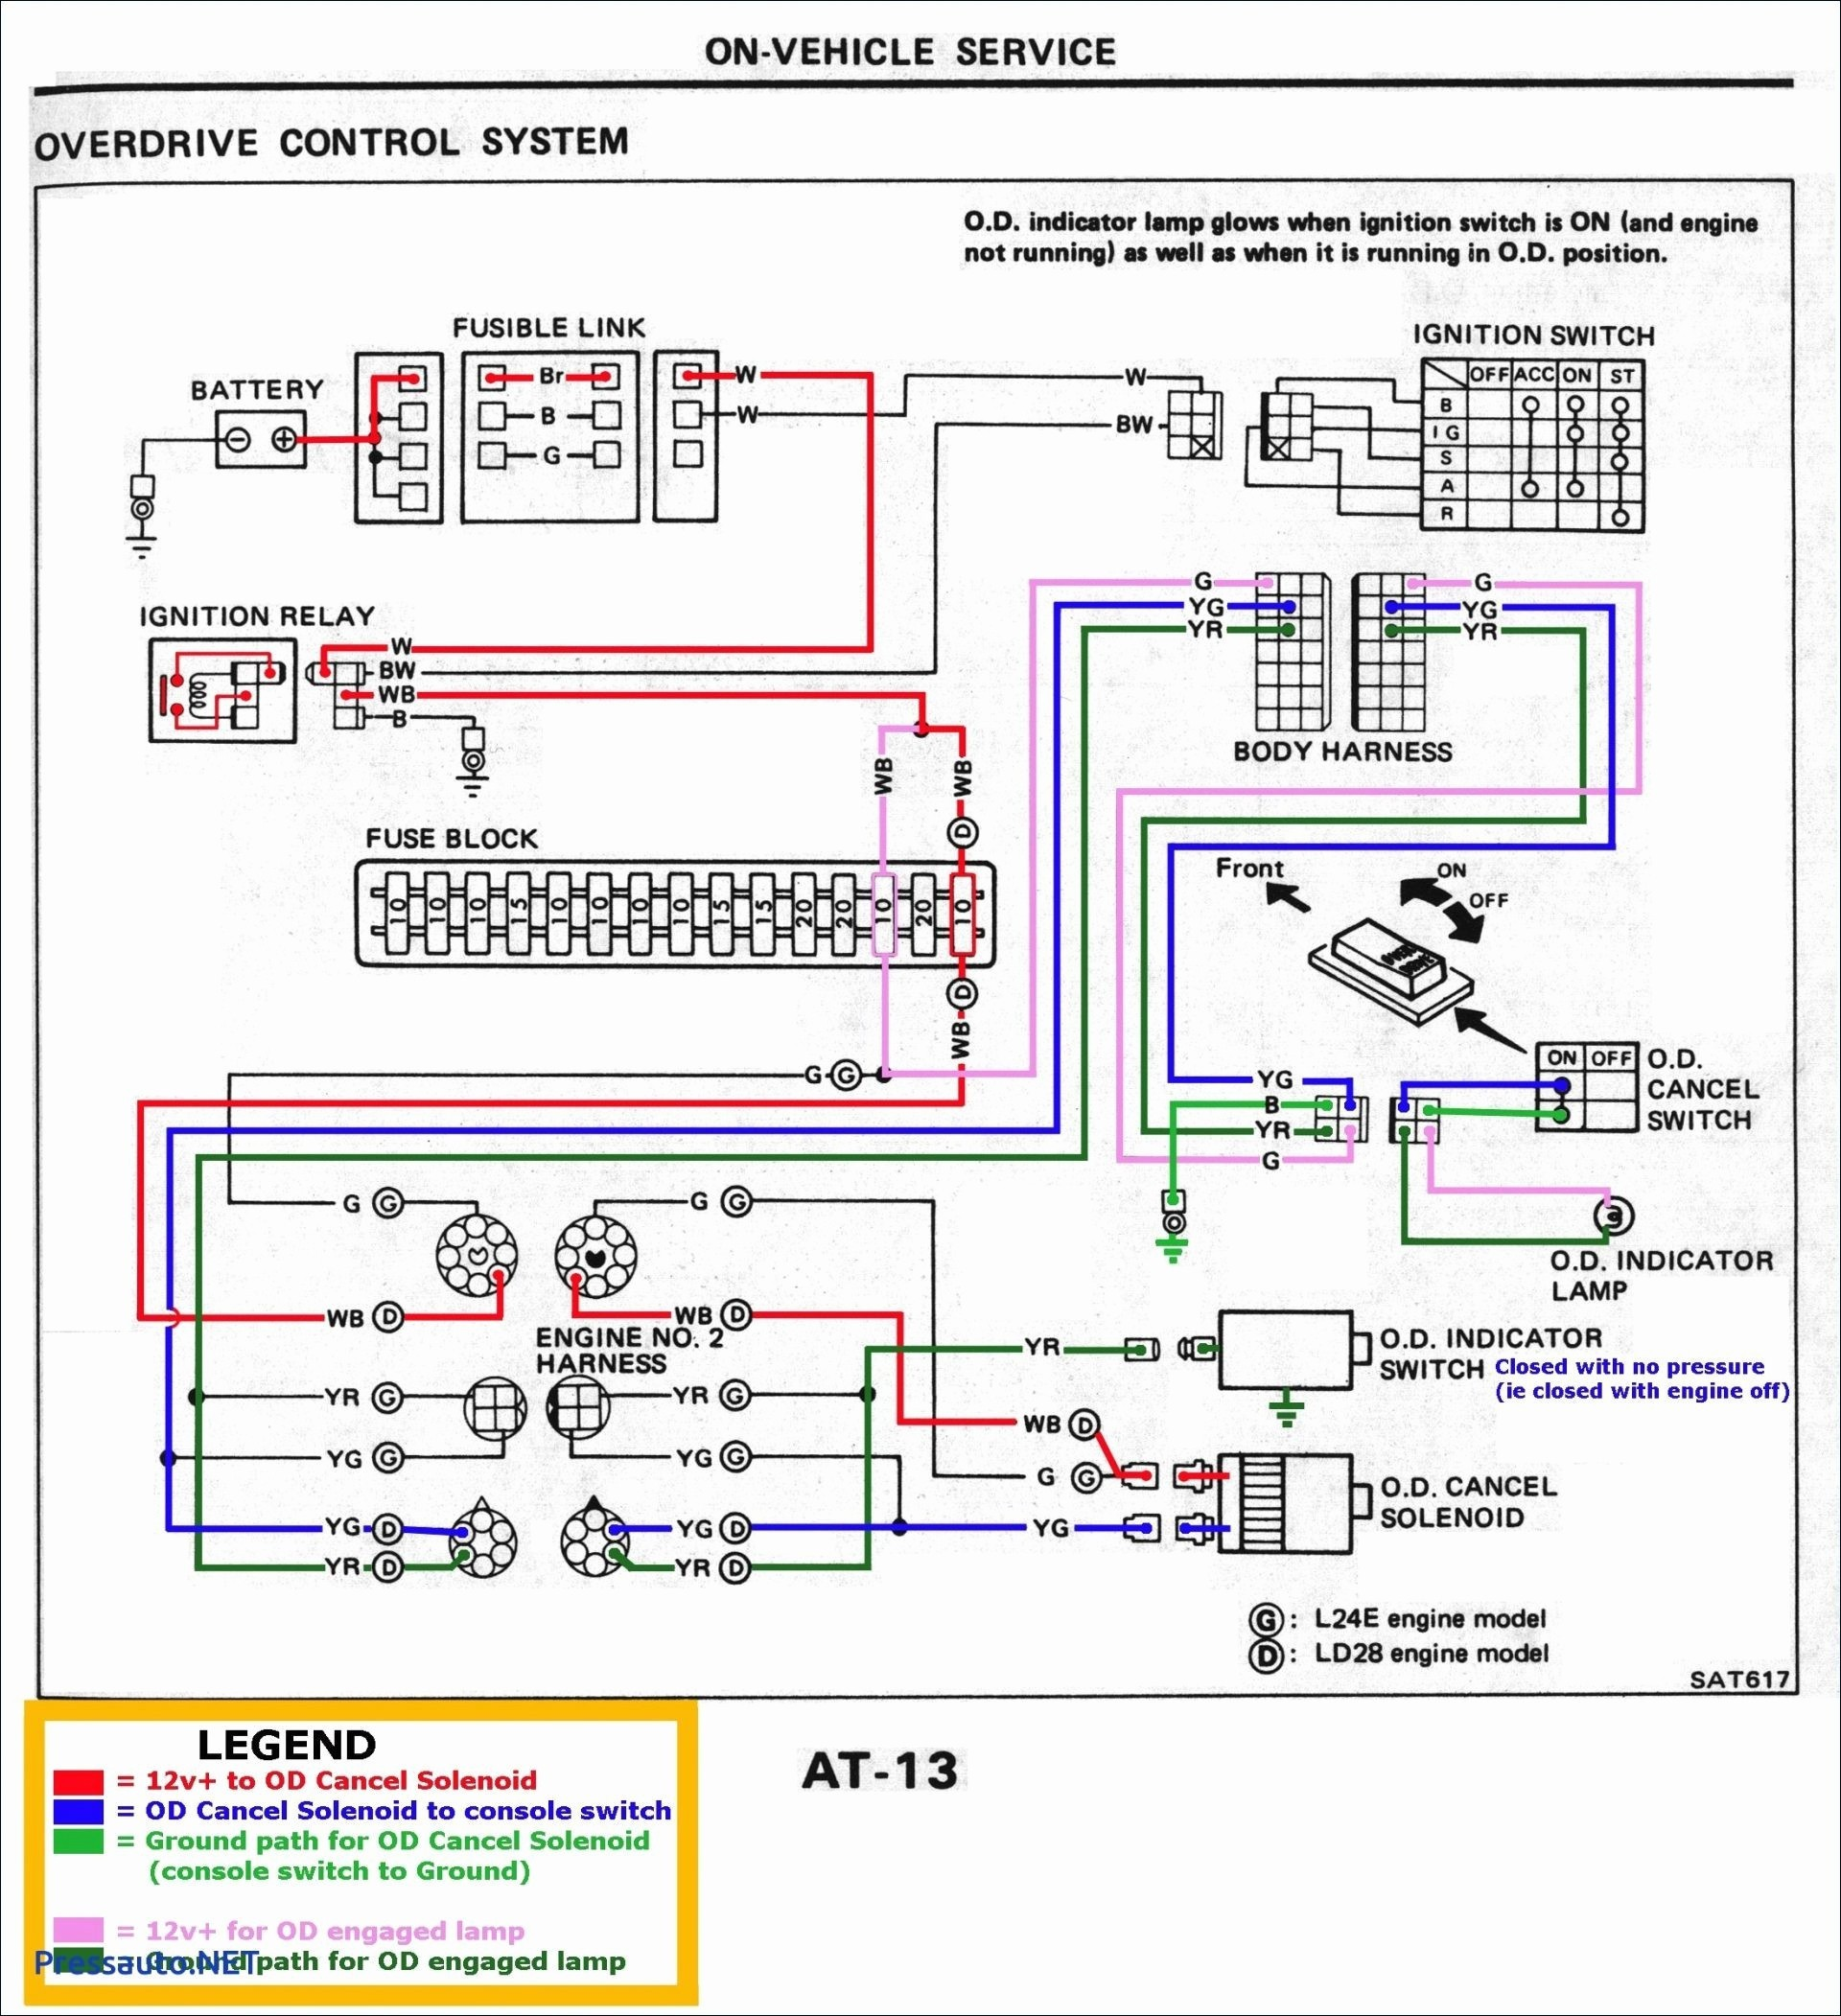 Pv Diagram for Petrol Engine 1979 Camaro Wiring Schematic Another Blog About Wiring Diagram • Of Pv Diagram for Petrol Engine John Deere Parts Diagrams John Deere Ts Gator Utility Vehicle Less